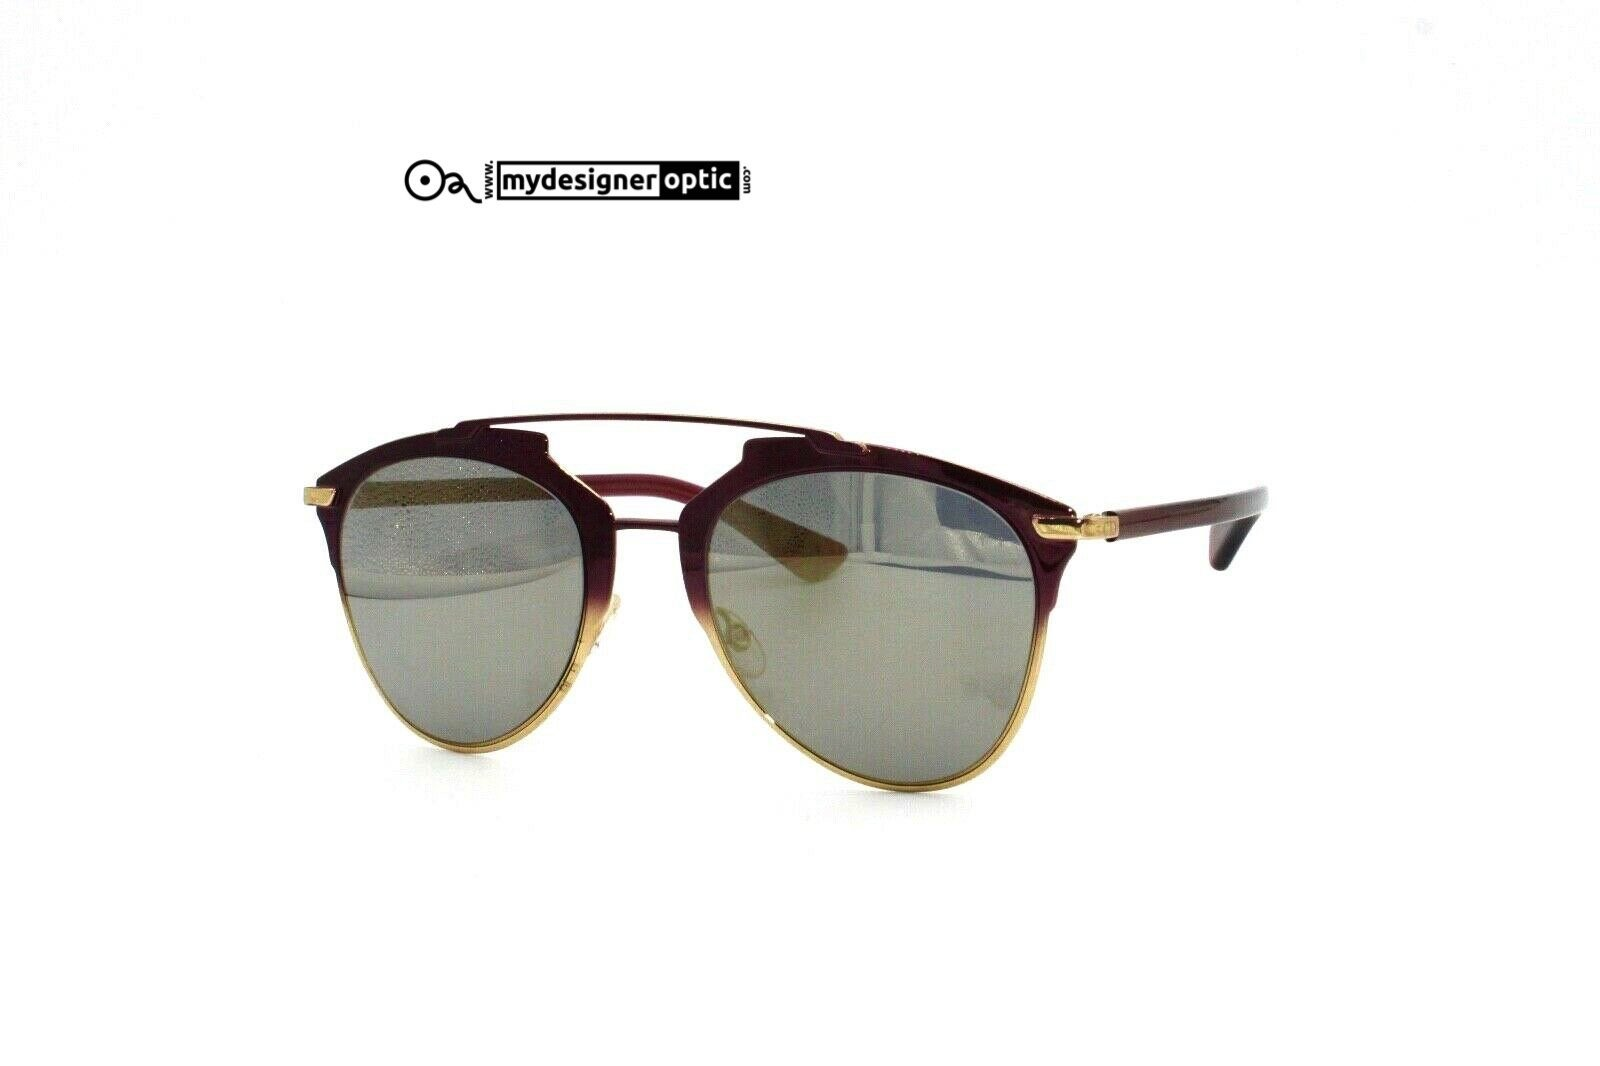 Christian Dior Reflected Sunglasses TYJUE 52-21 140 Made in Italy - Mydesigneroptic